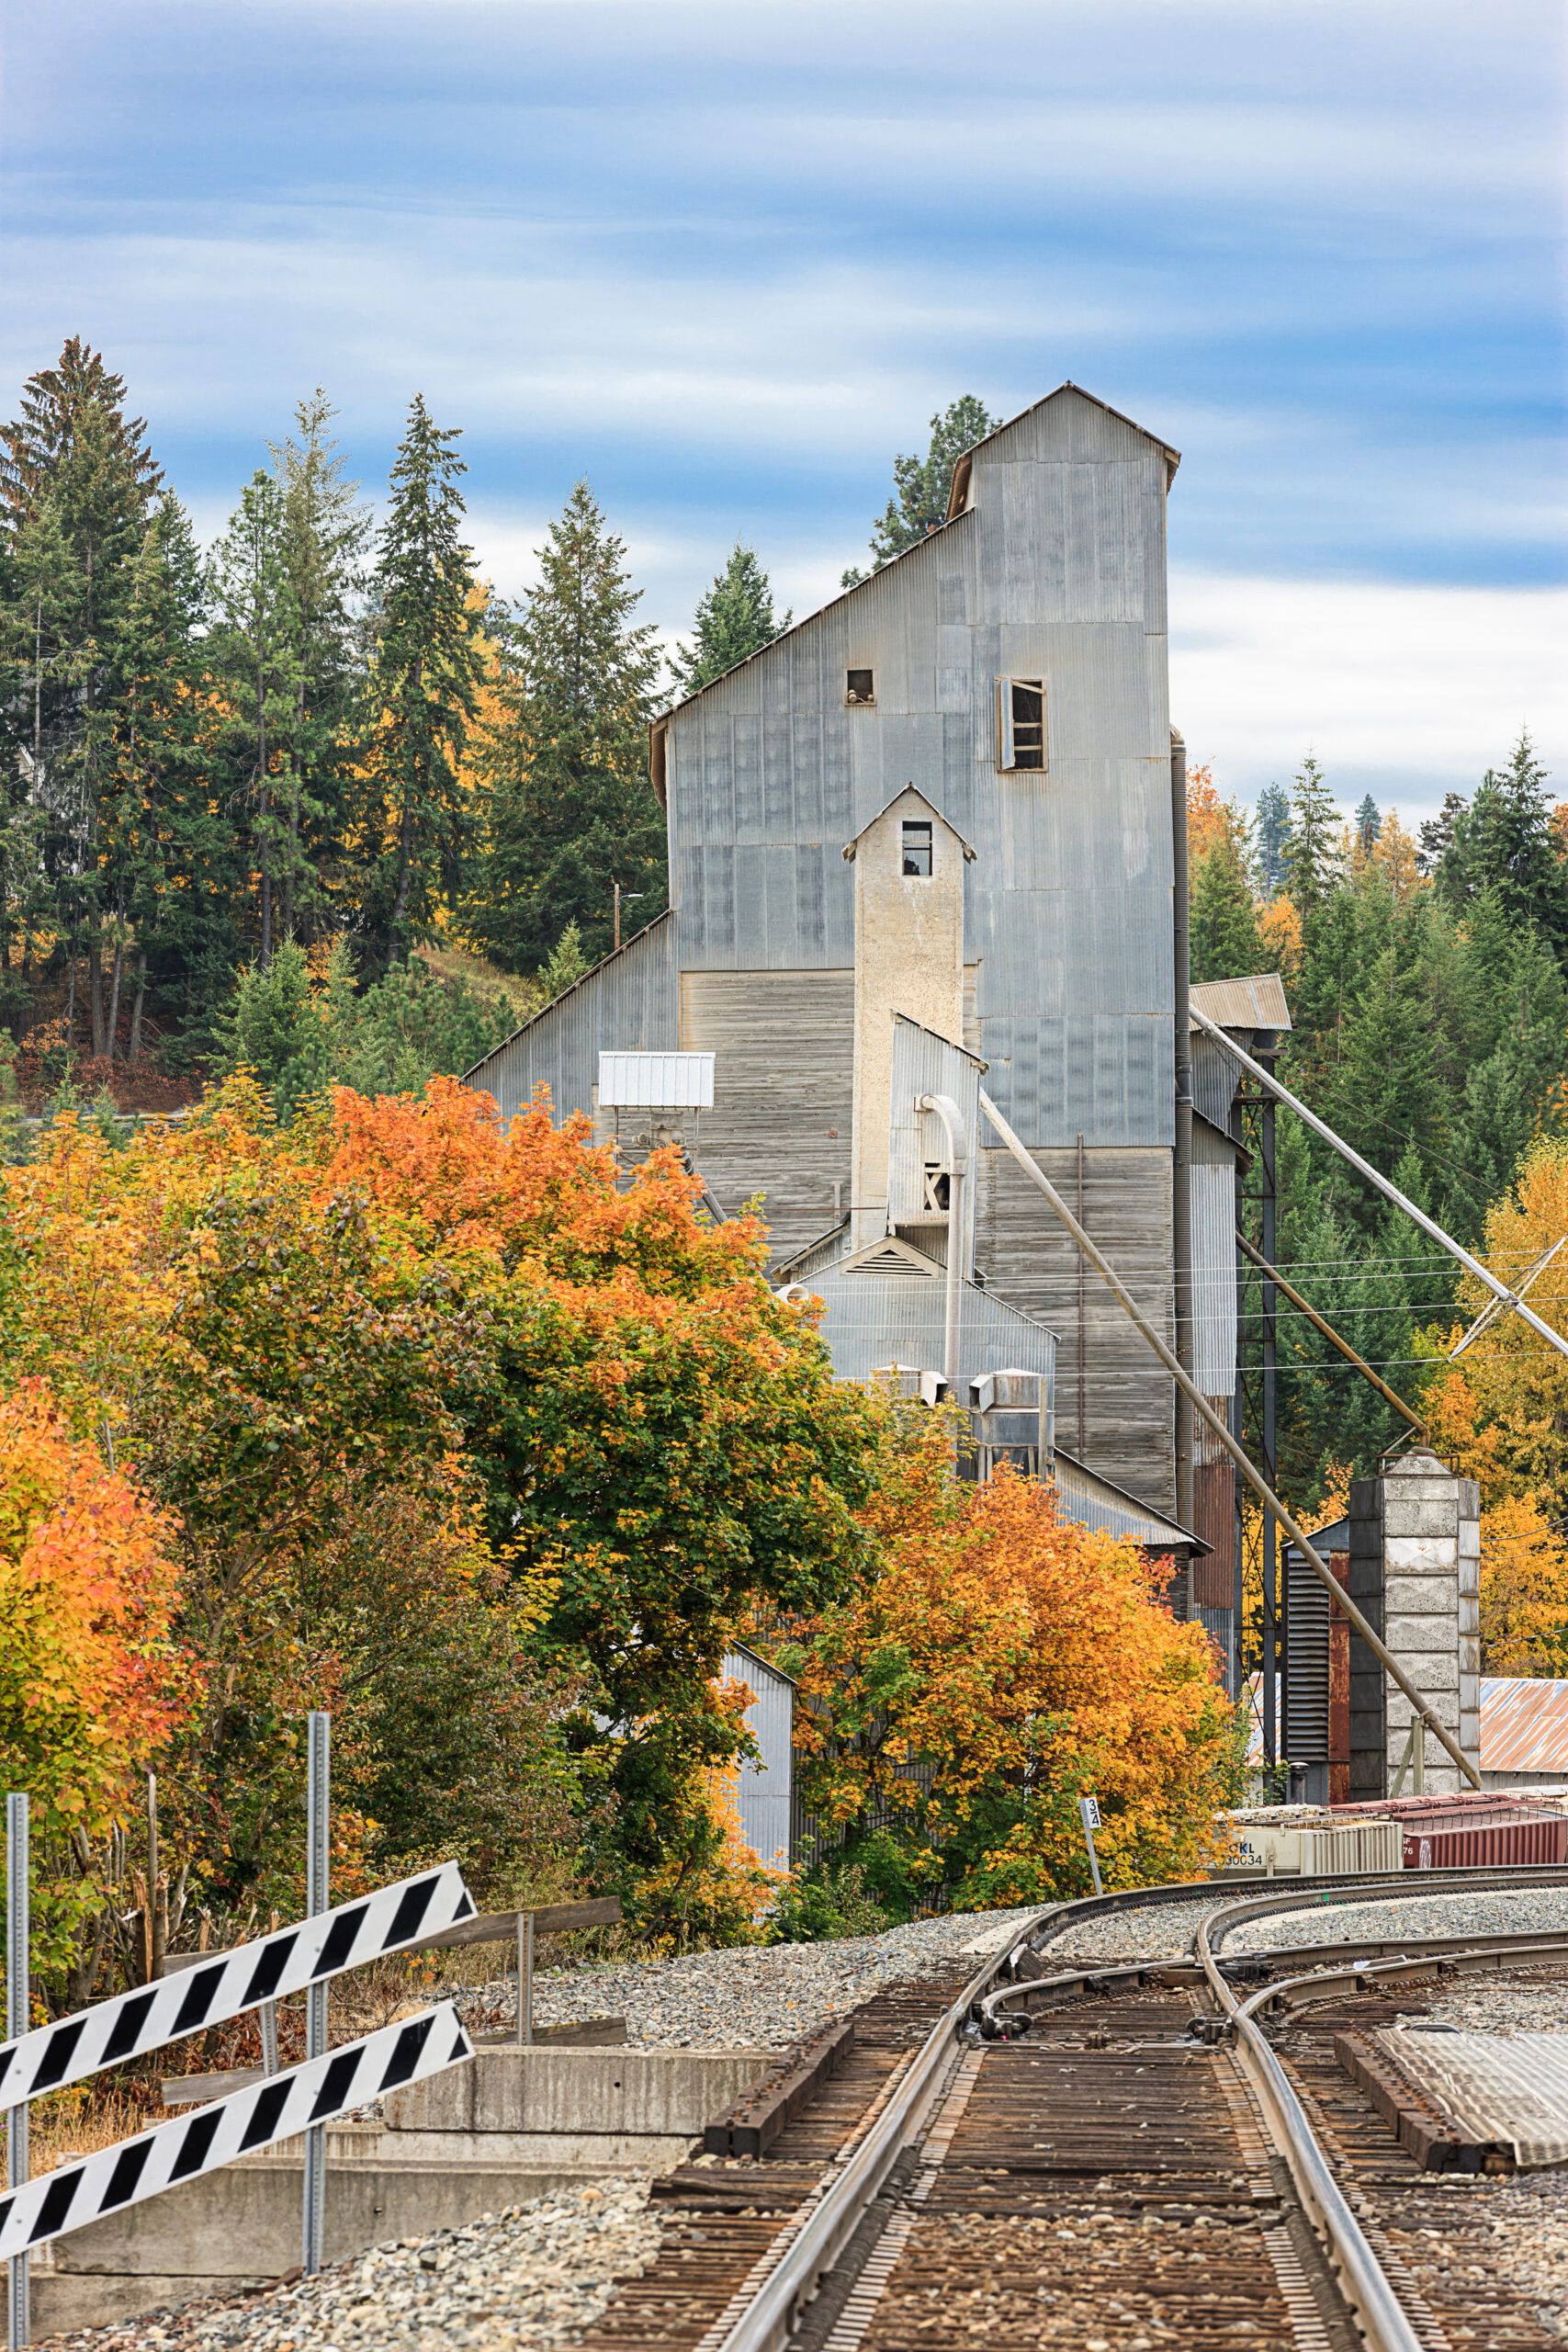 a cute barn-like structure in the small town of bonners ferry idaho, with a railroad track and orange fall foliage